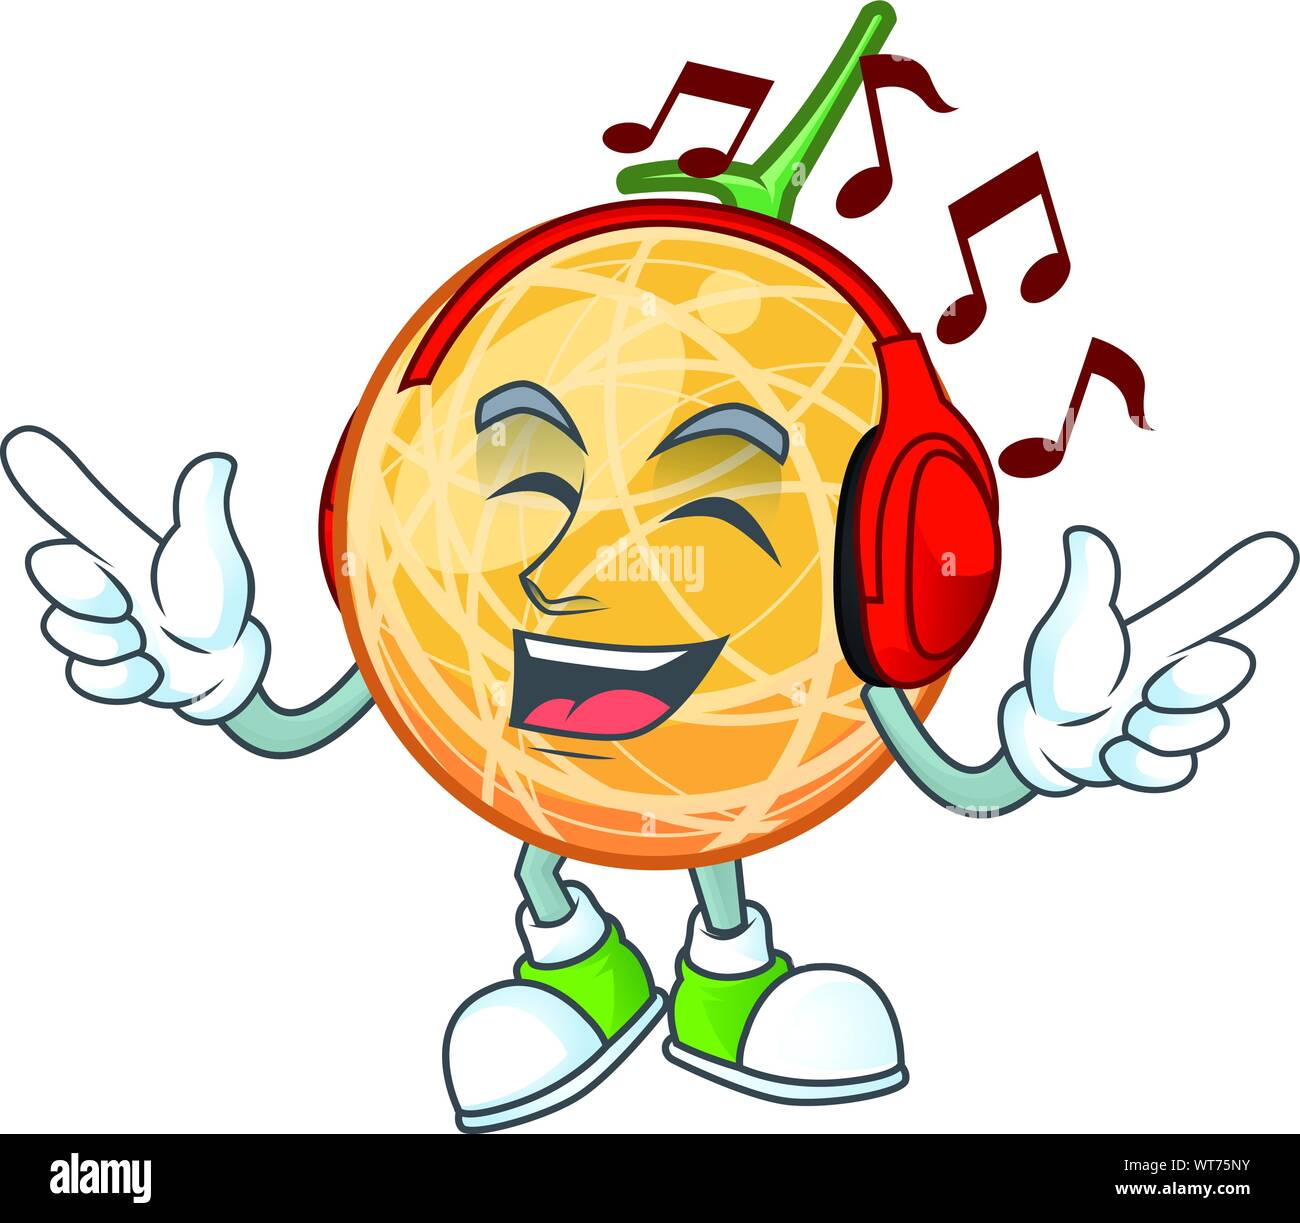 Listening Music Healthy Cantaloupe Fruit In Cartoon Character Stock Vector Image Art Alamy Find the latest tracks, albums cantaloupe is either: https www alamy com listening music healthy cantaloupe fruit in cartoon character image273065463 html